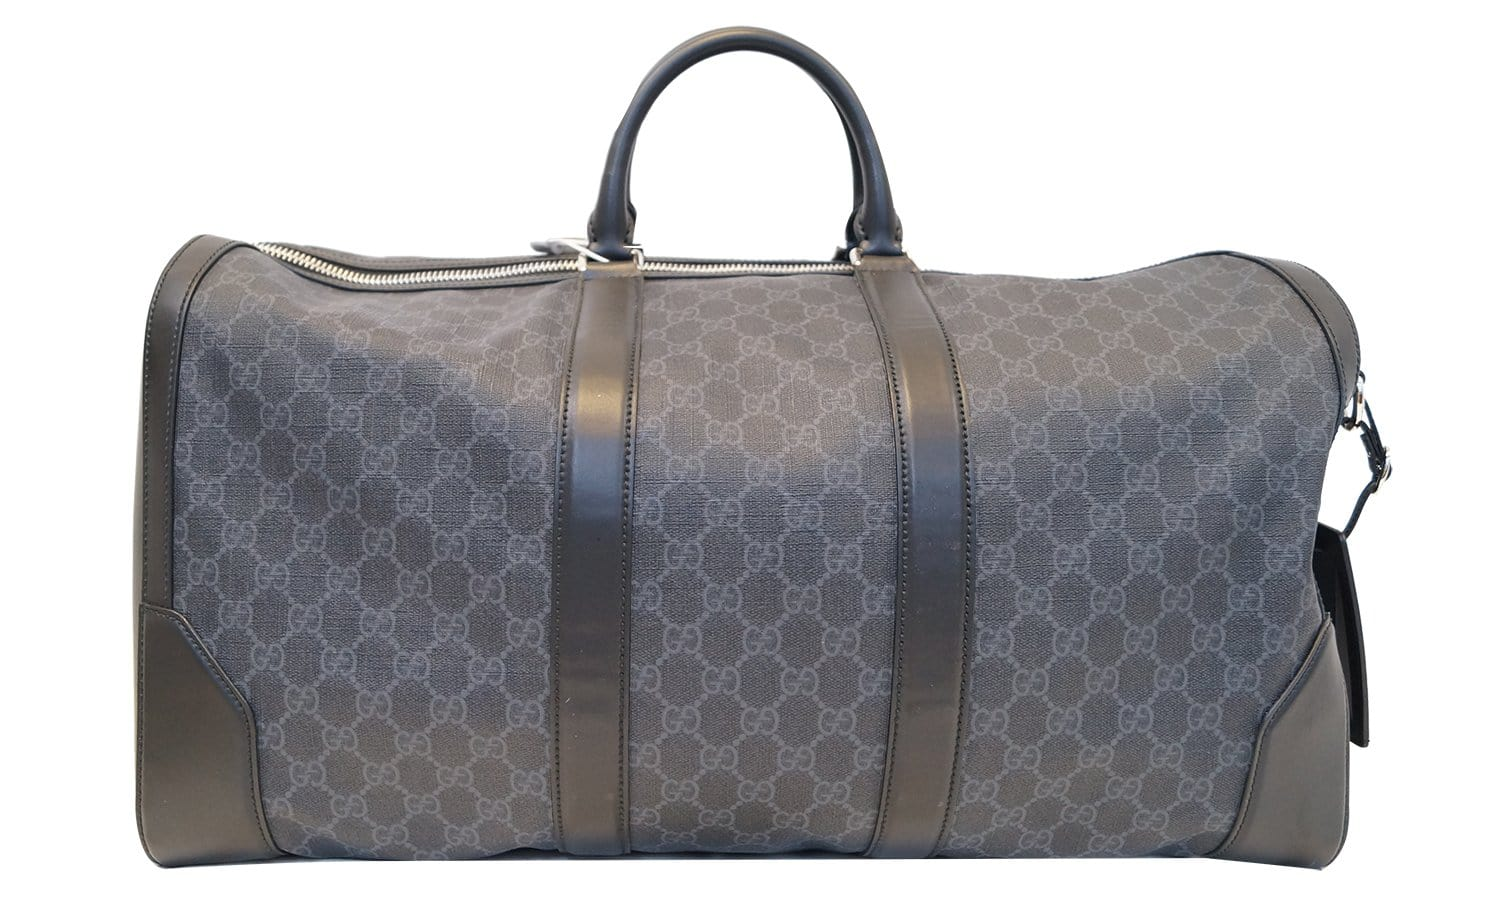 aa2bbe6384f2 GUCCI Black Soft GG Supreme carry-on Duffle Travel Bag 478323